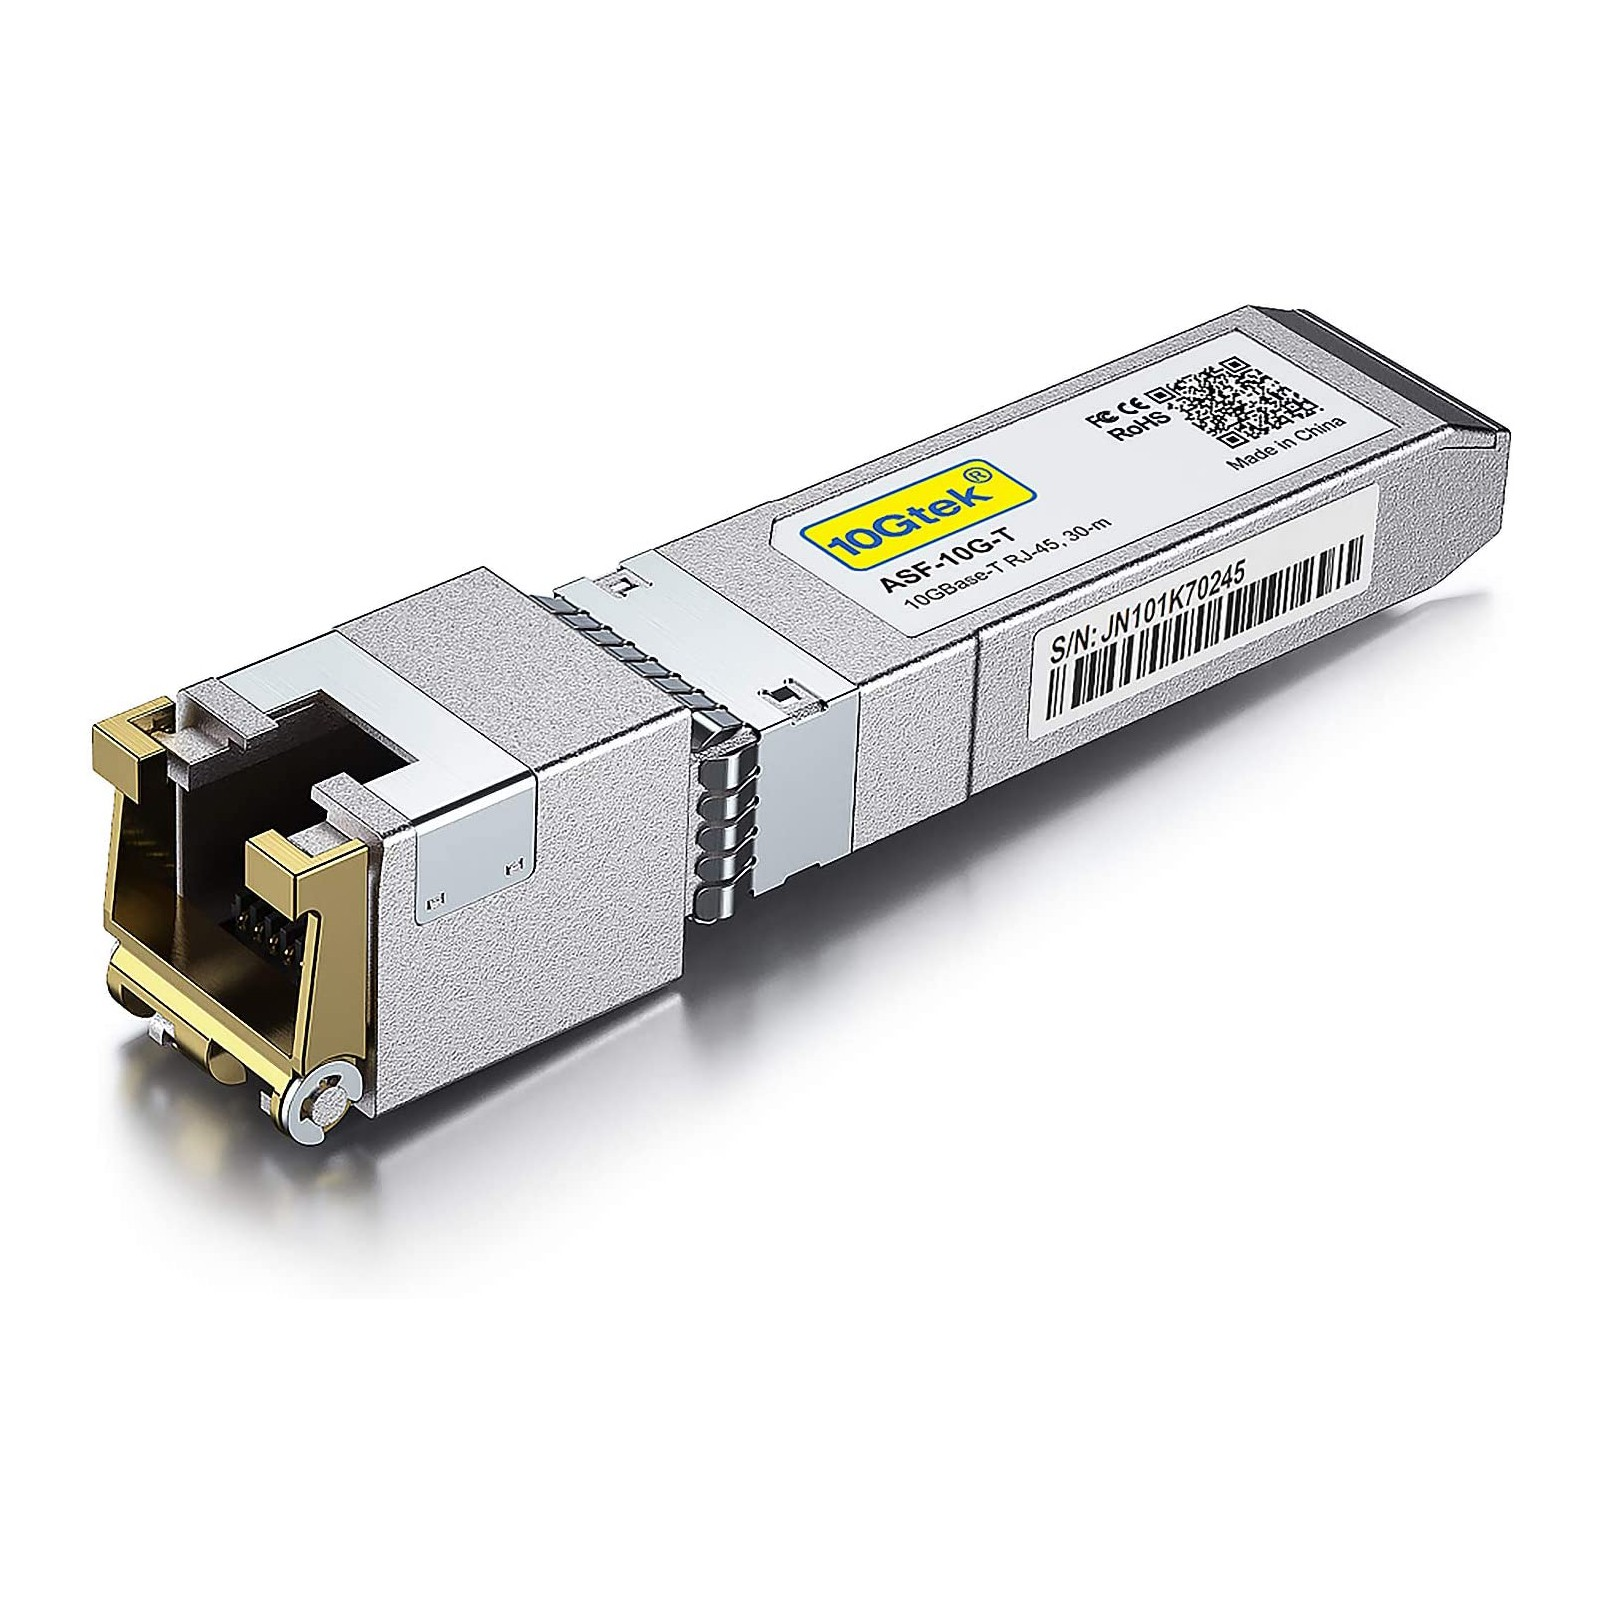 10GBase-T SFP+ Transceiver, 10G T, 10G Copper, RJ-45 SFP+ CAT.6a up to 30 meters Compatible for Solarflare